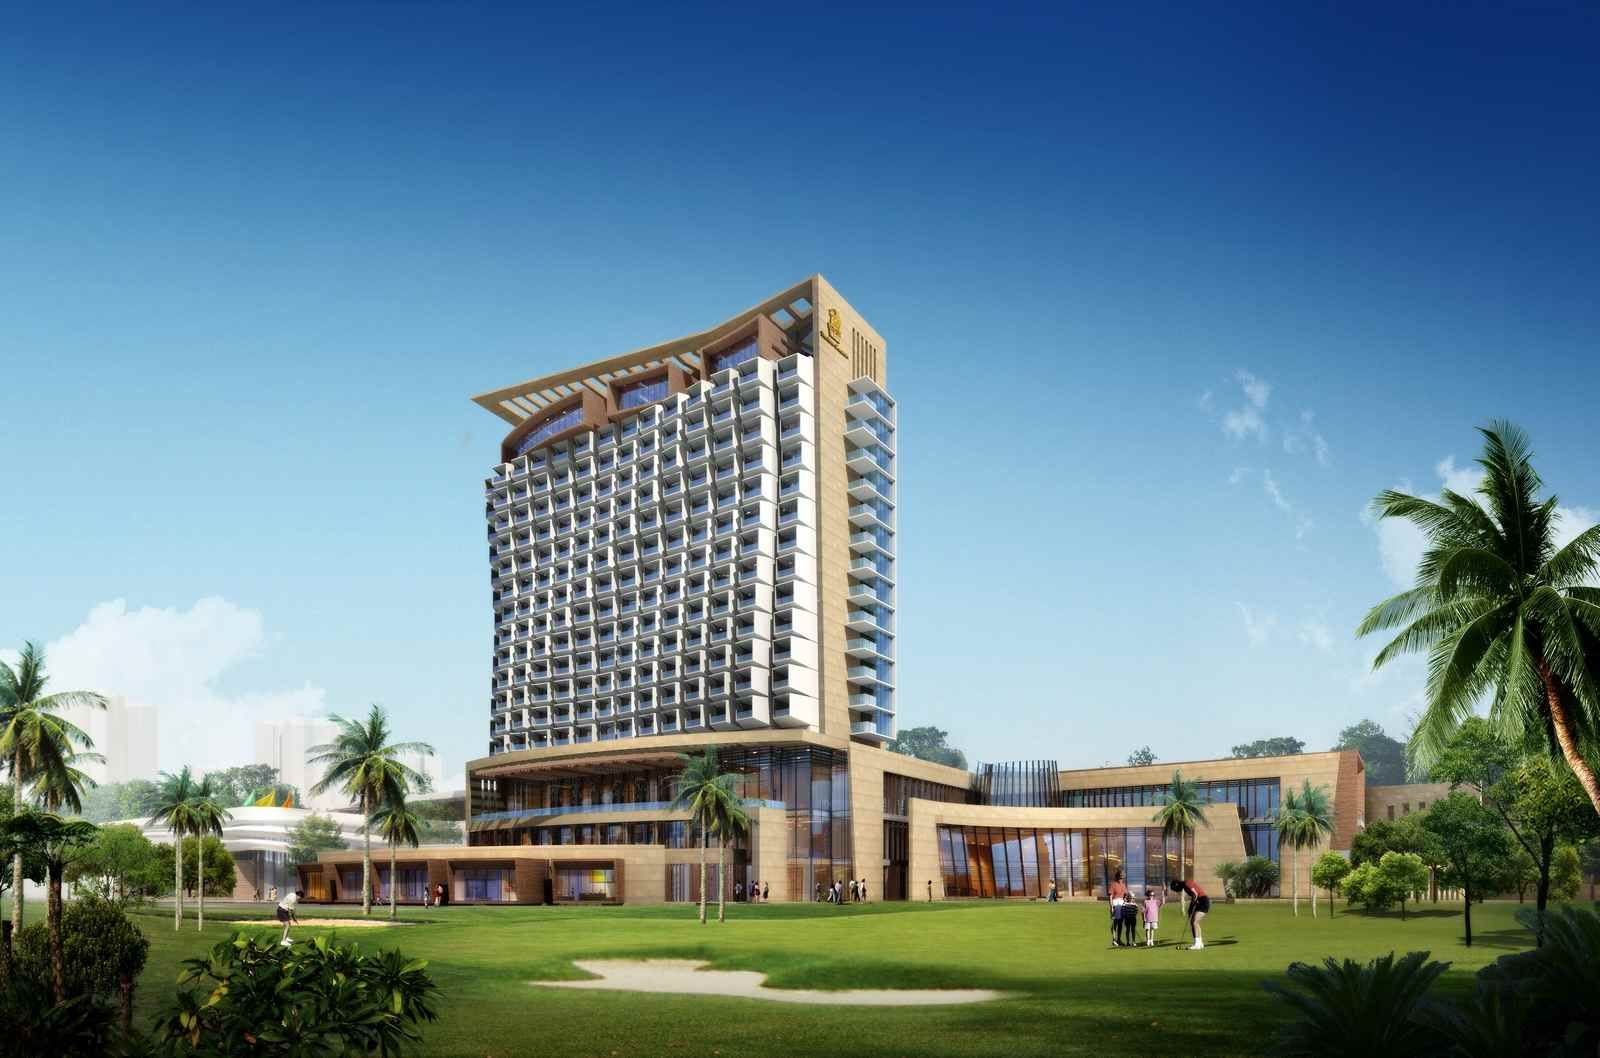 Ritz-Carlton and Mission Hills Lan Kwai Fong to Open in Haikou